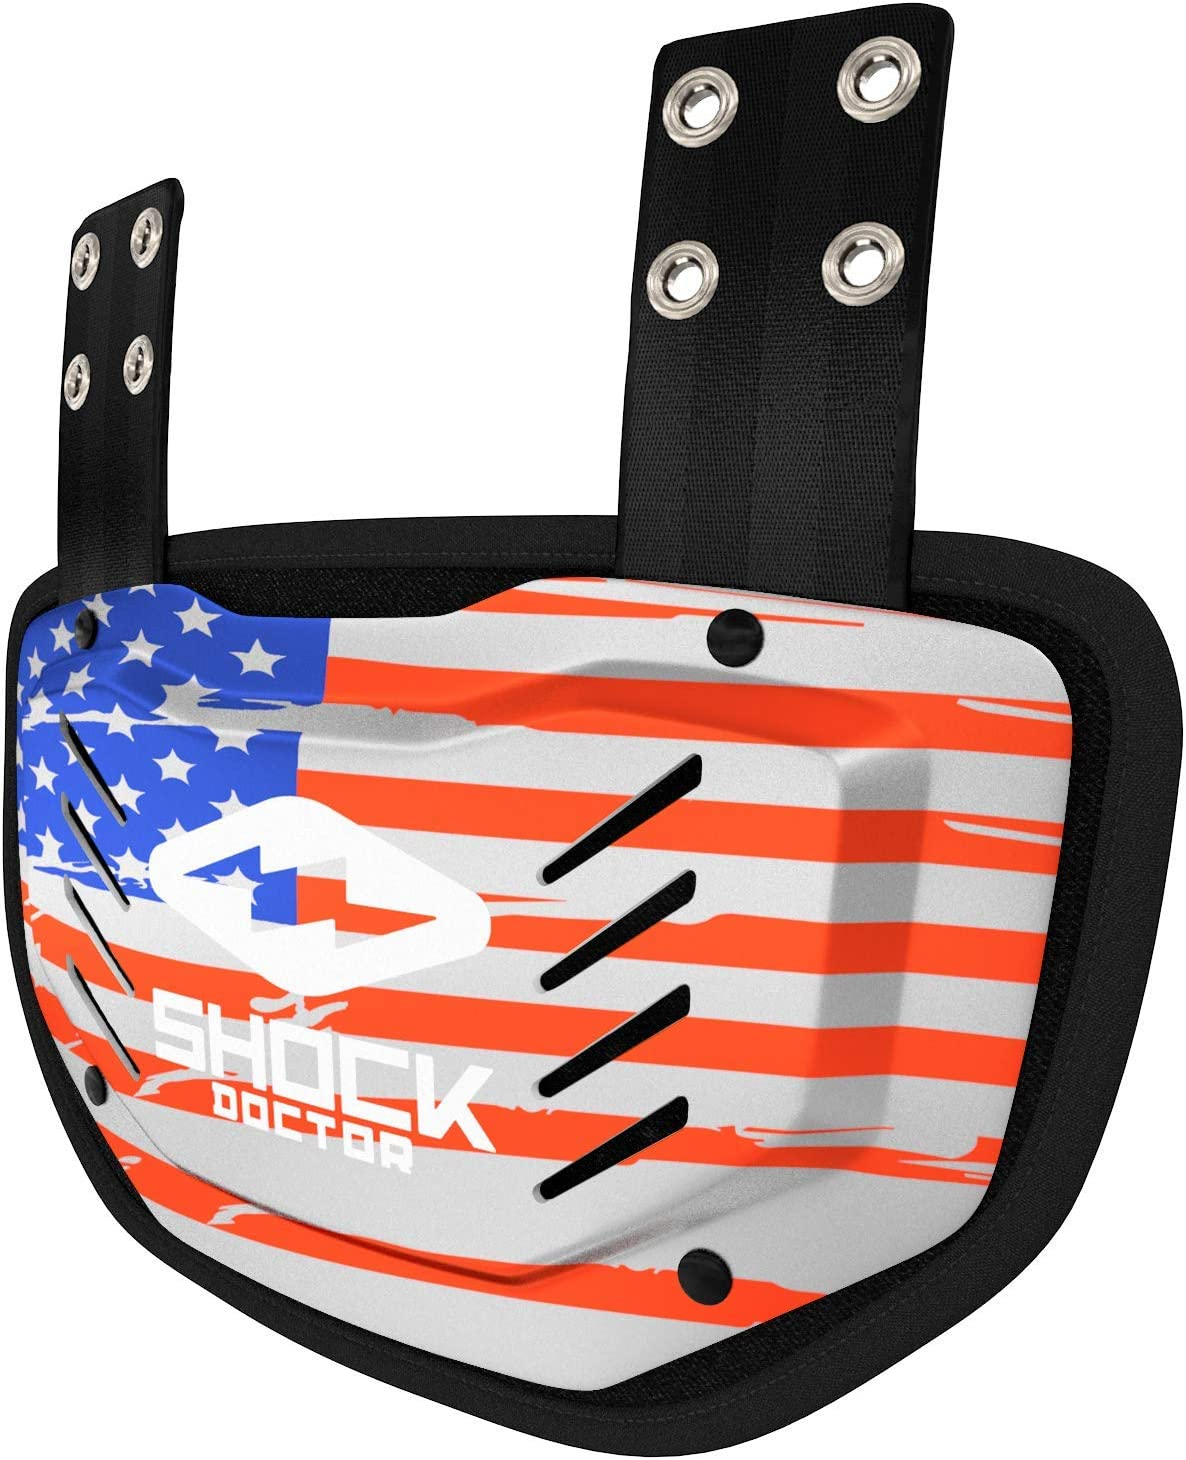 Shock Doctor Football Back Plate – Lower Back/Rear/Back Bone Protector Shield Backplate. for Youth, Adult, Kids.